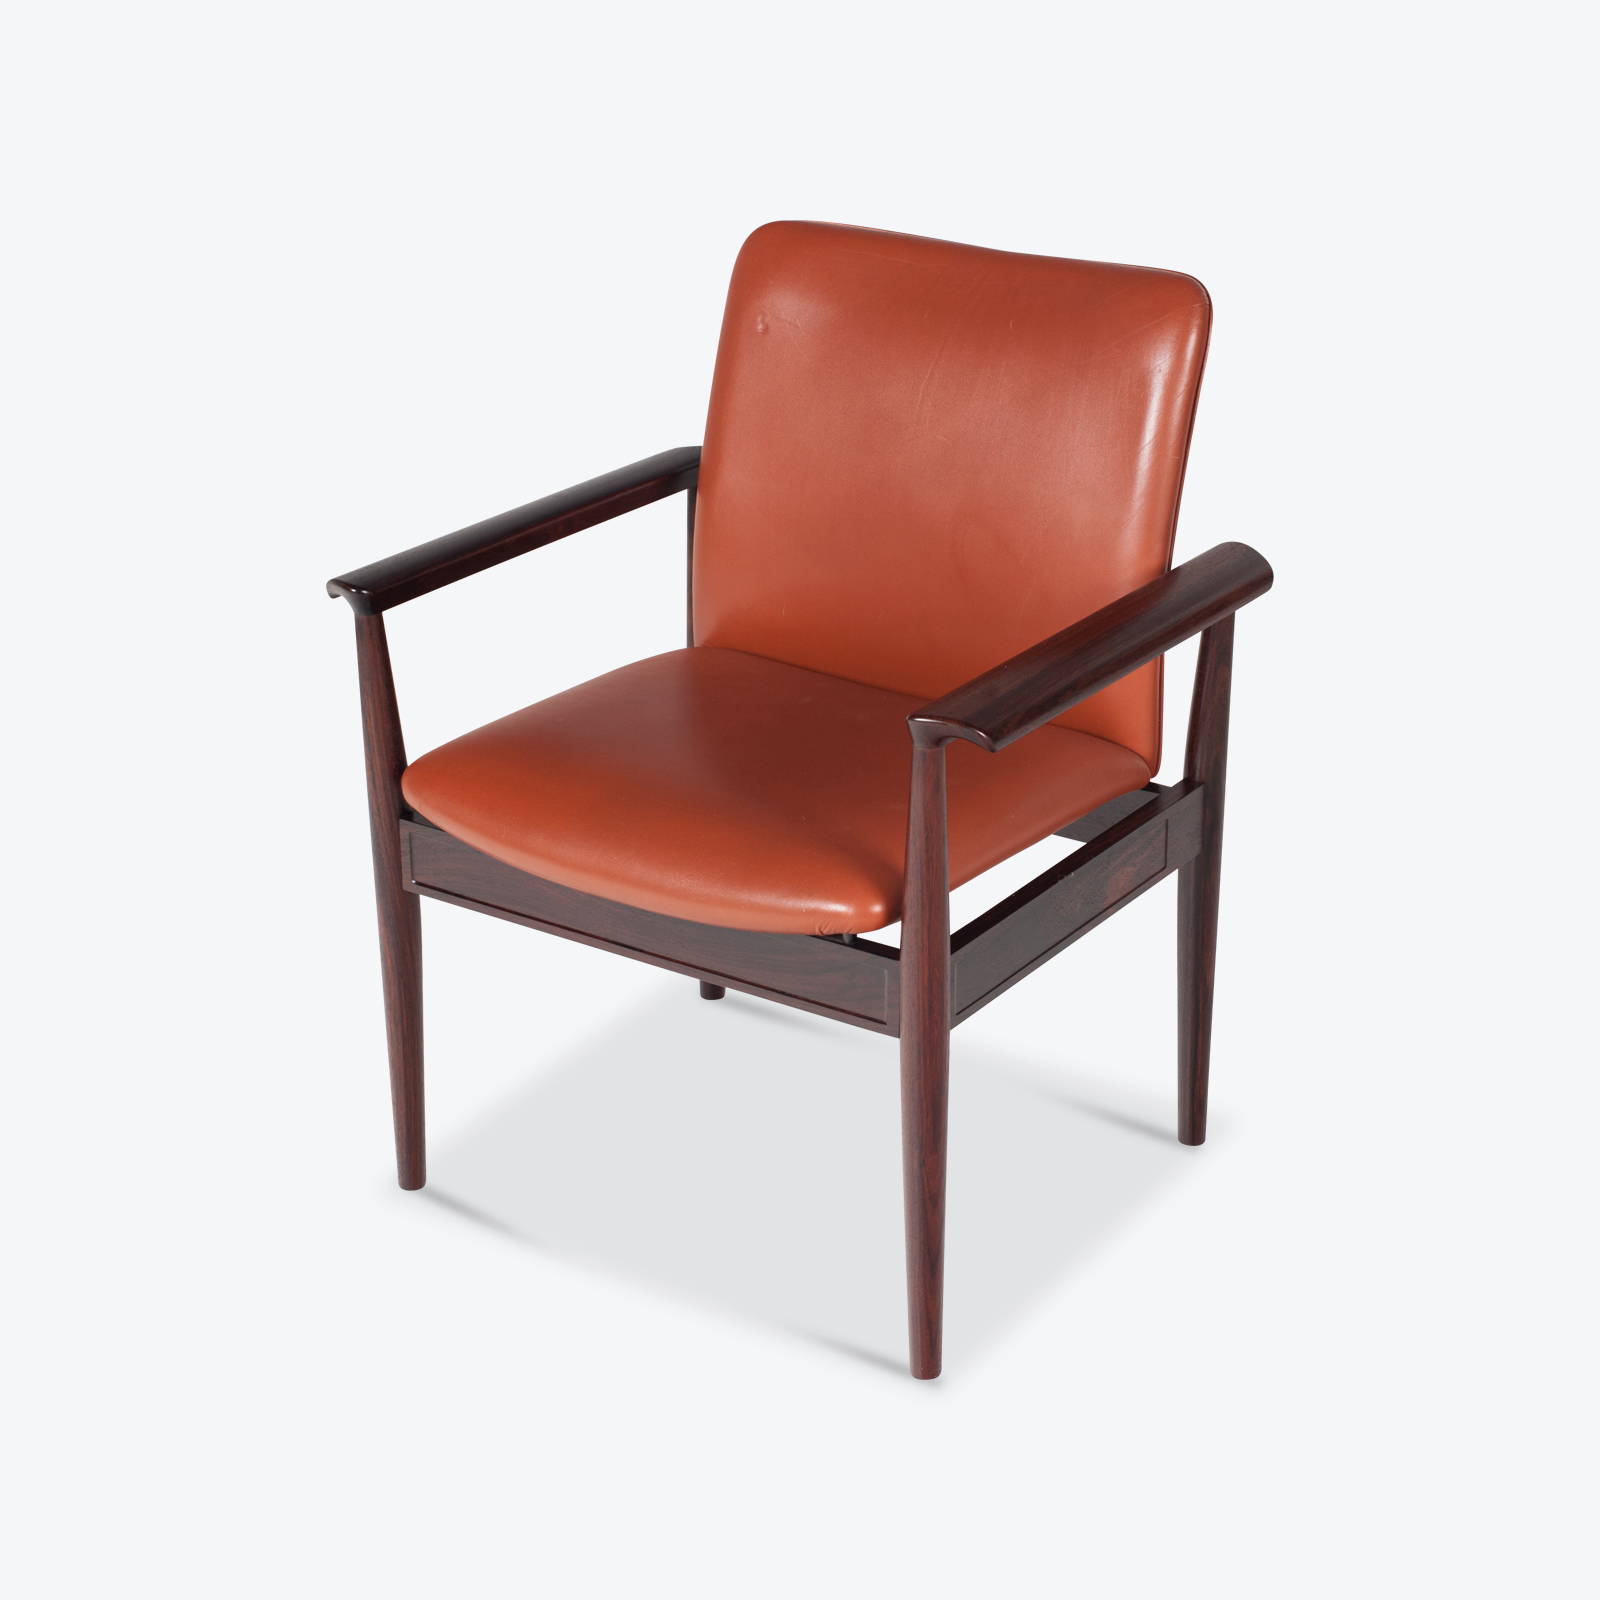 Diplomat Chairs In Rosewood By Finn Juhl For France & Daverkosen, 1963, Denmark Hero 1